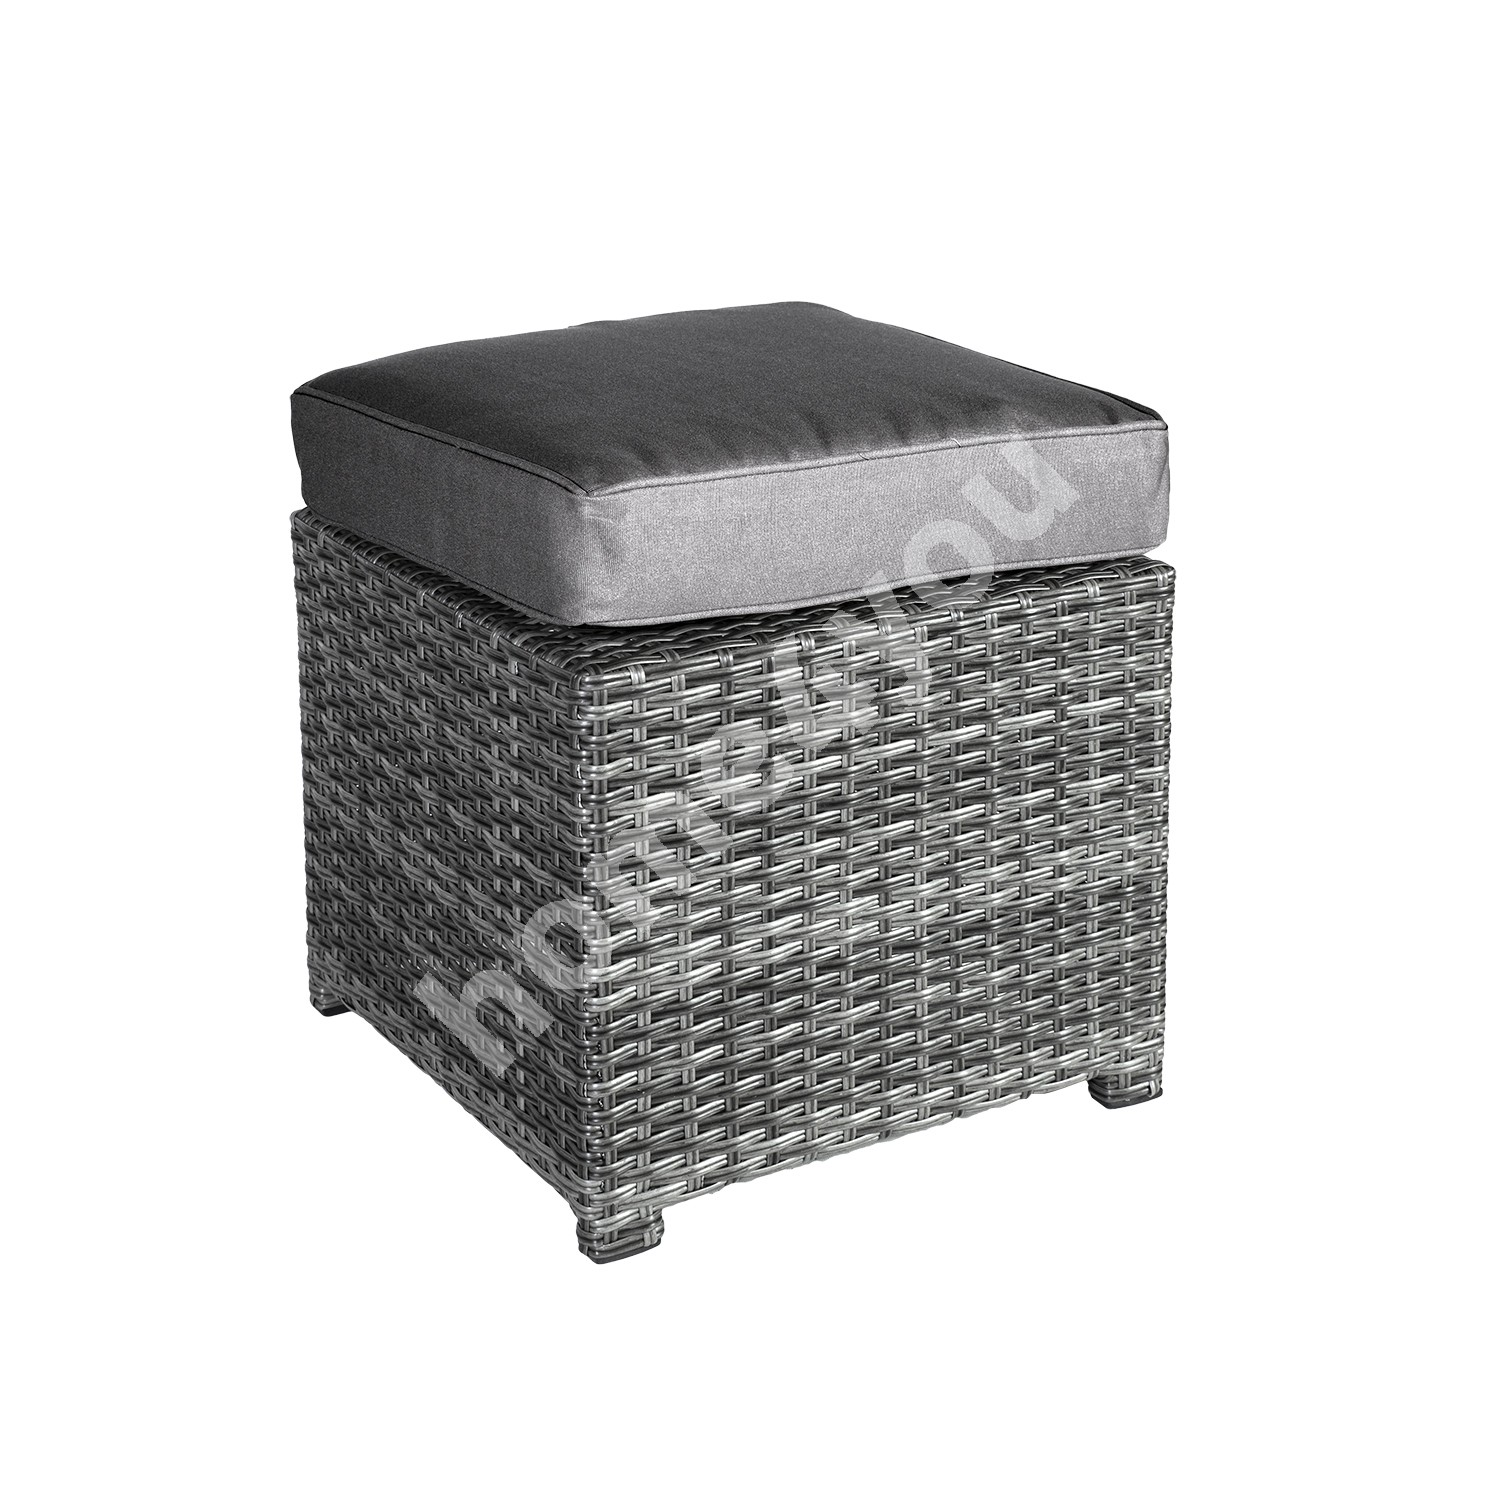 Stool PAVIA  with cushion 45,5x45,5xH34,5cm,  aluminum frame with plastic wicker, color: dark grey